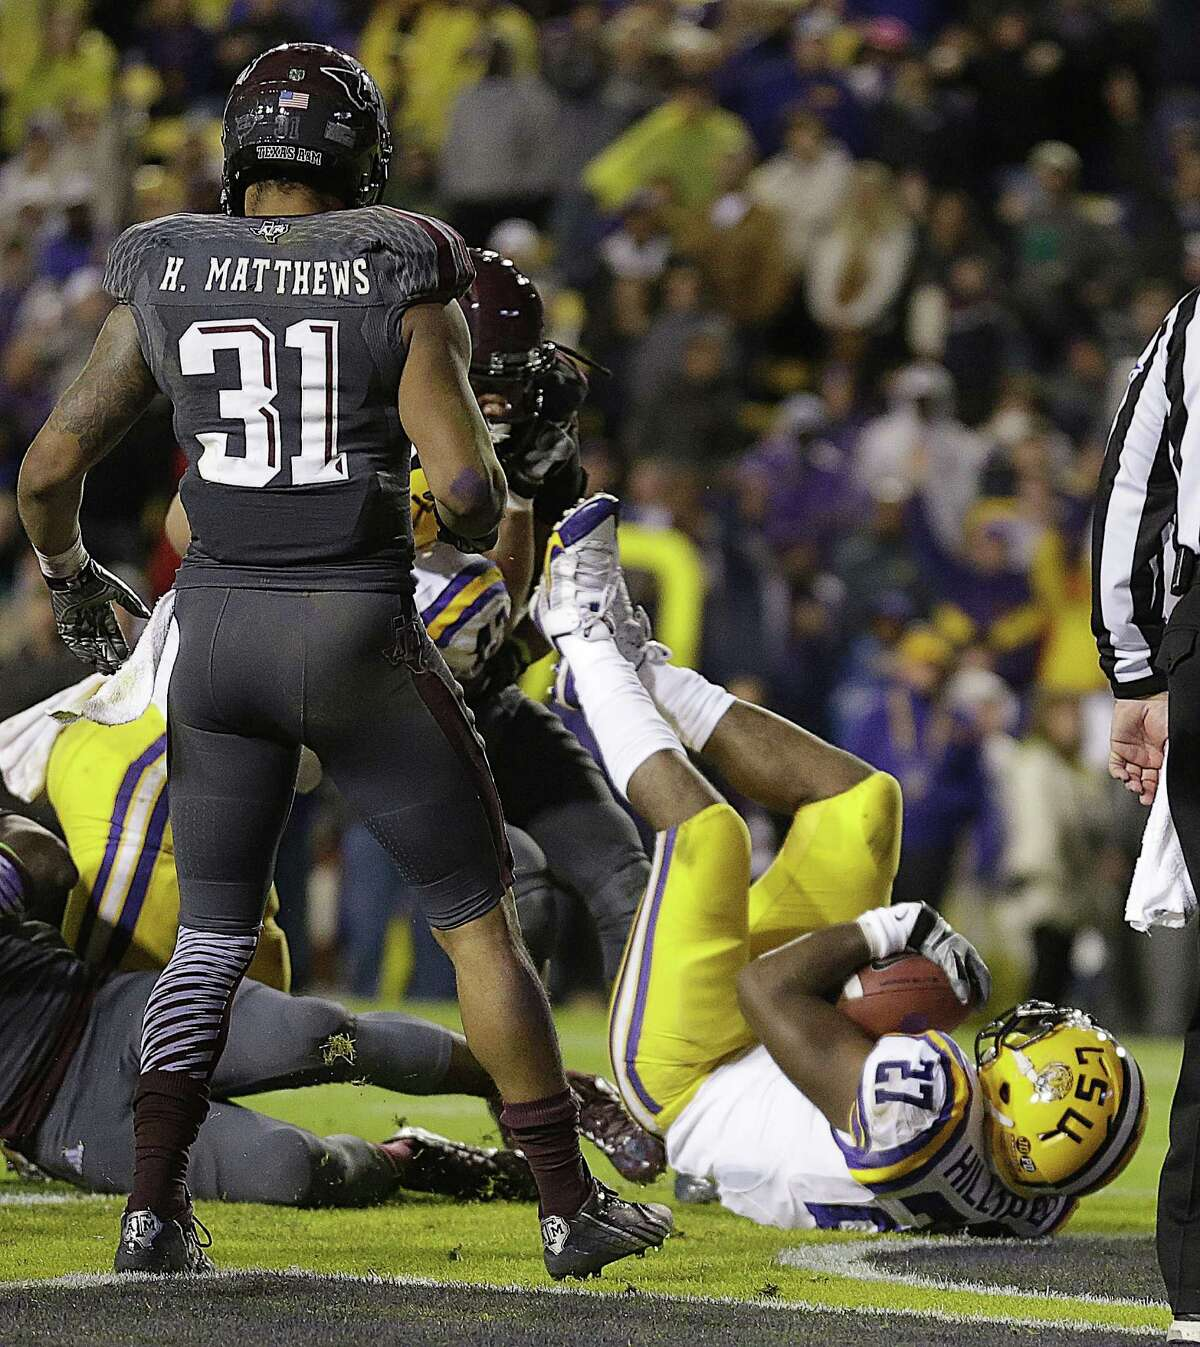 LSU running back Kenny Hilliard (27) dives into the end zone on a rushing touchdown in the second half of an NCAA college football game against Texas A&M in Baton Rouge, La., Saturday, Nov. 23, 2013. LSU won 34-10. (AP Photo/Gerald Herbert)